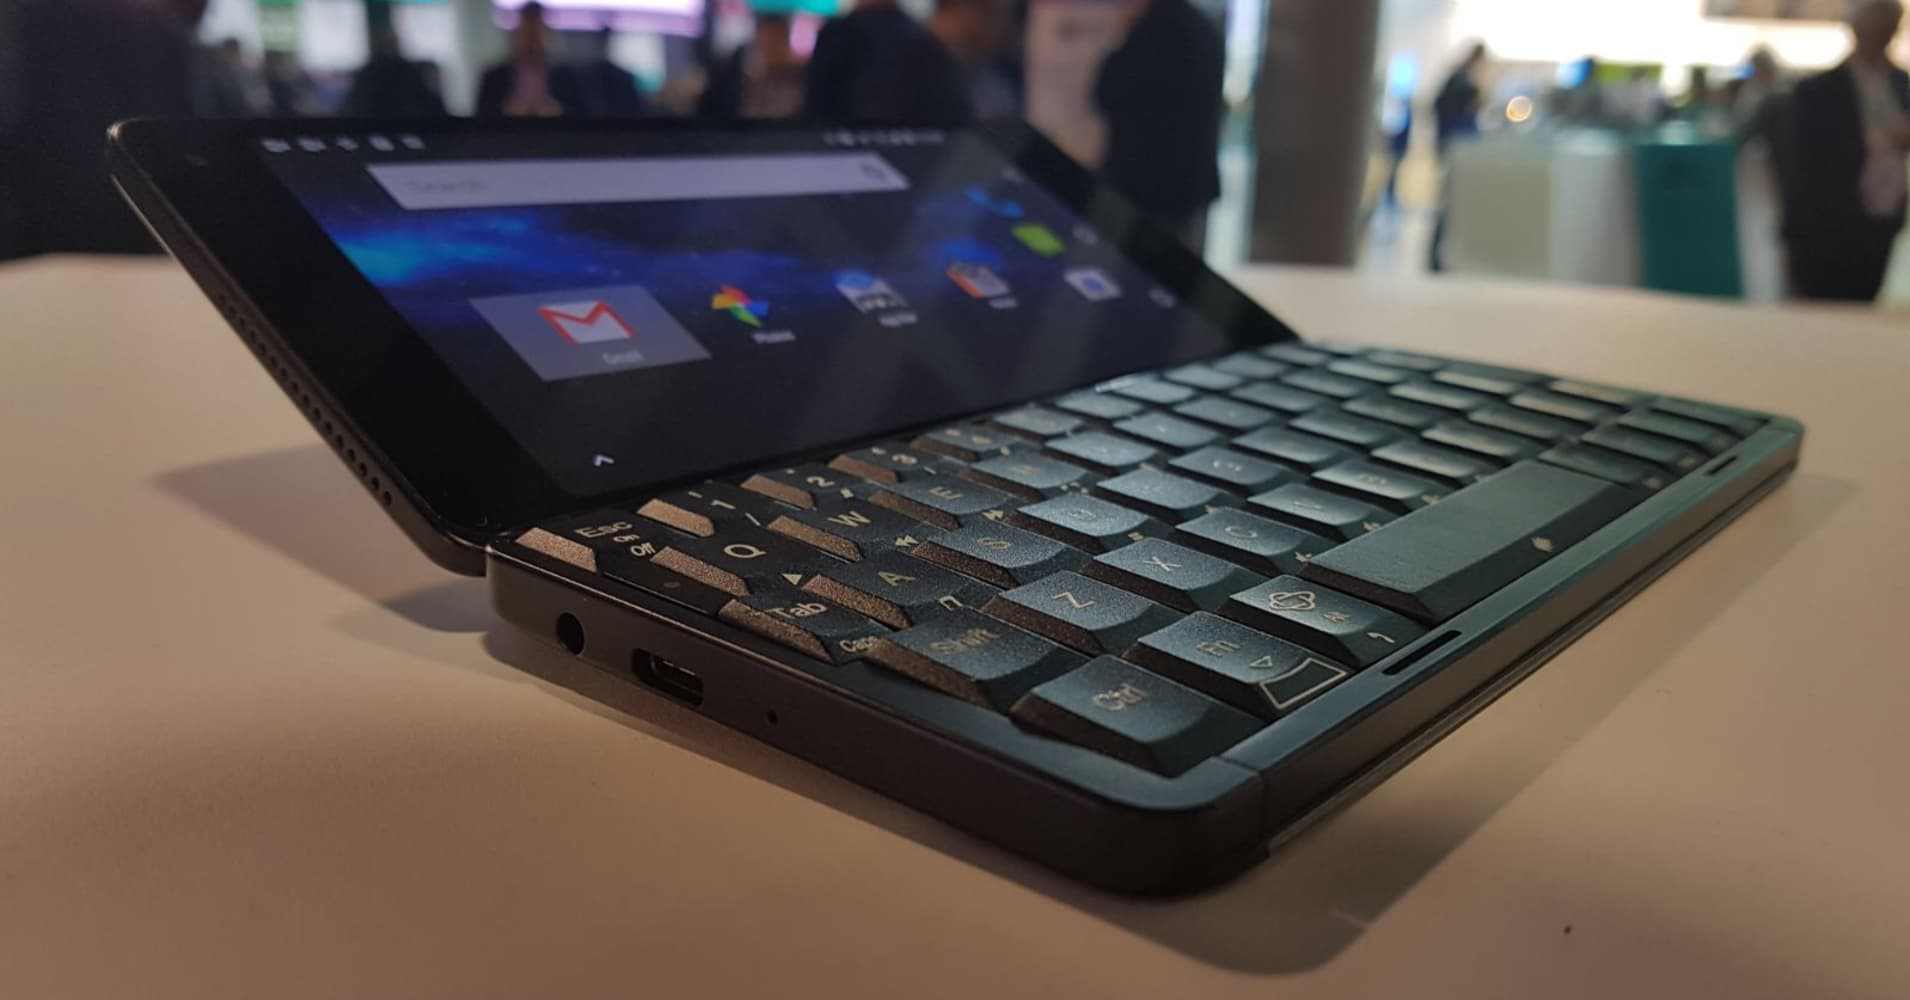 A '90s-style personal digital assistant that's a smartphone with a keyboard has launched